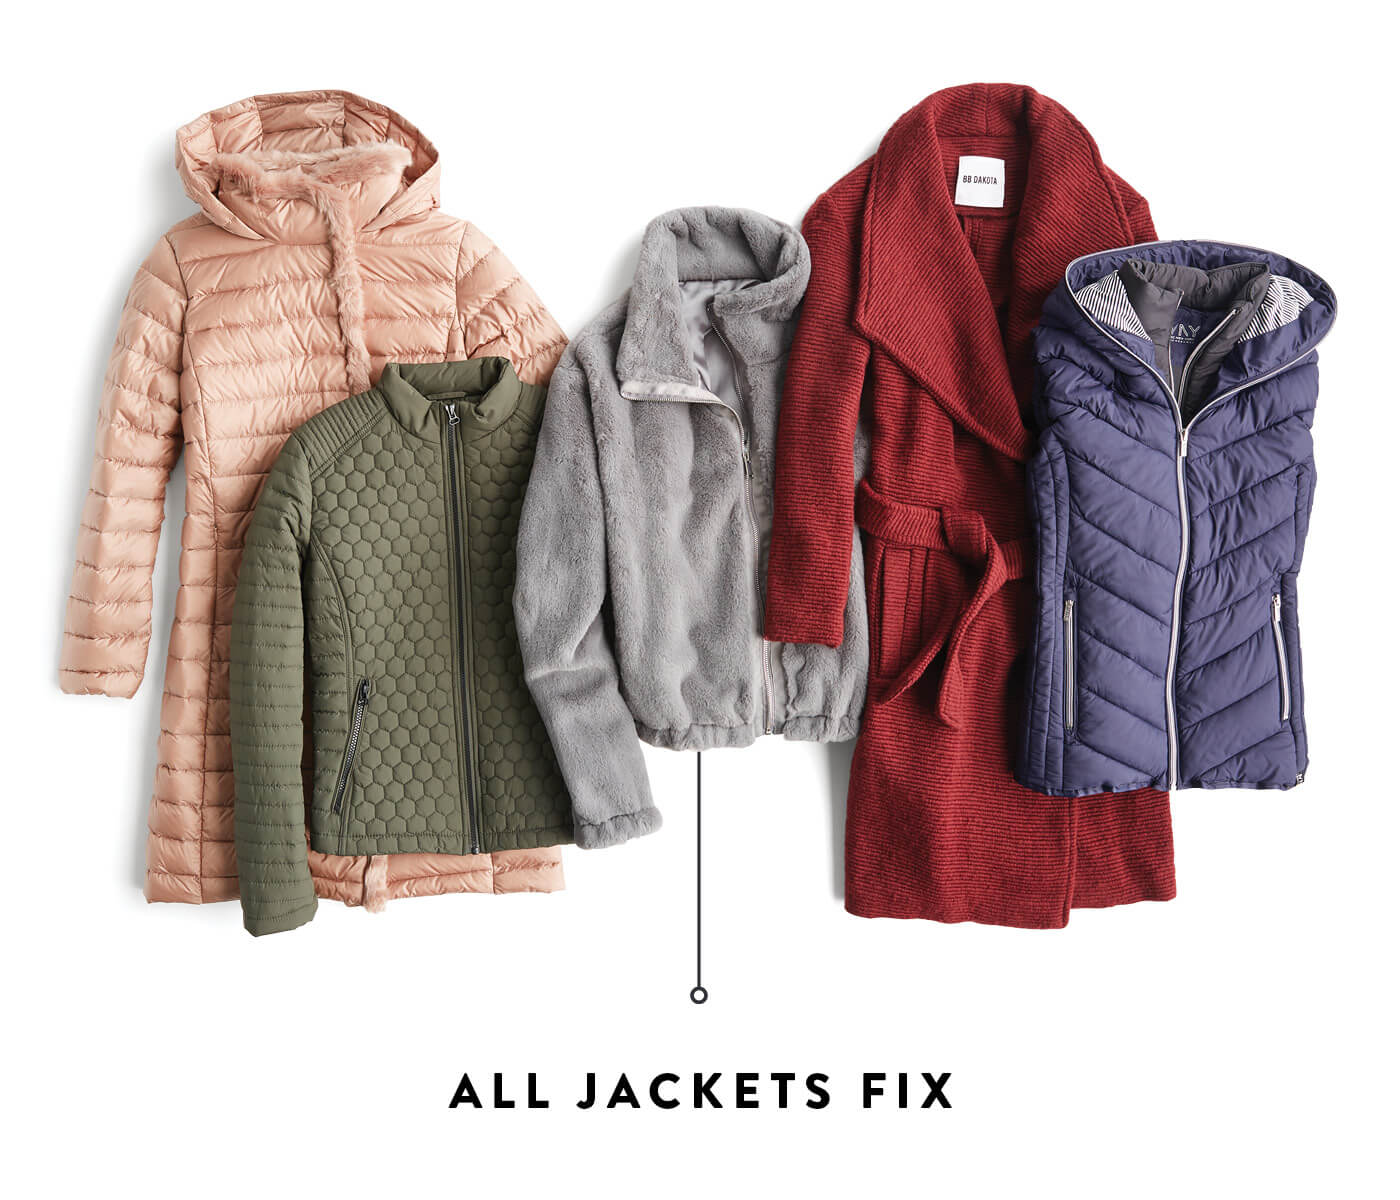 all jackets fix